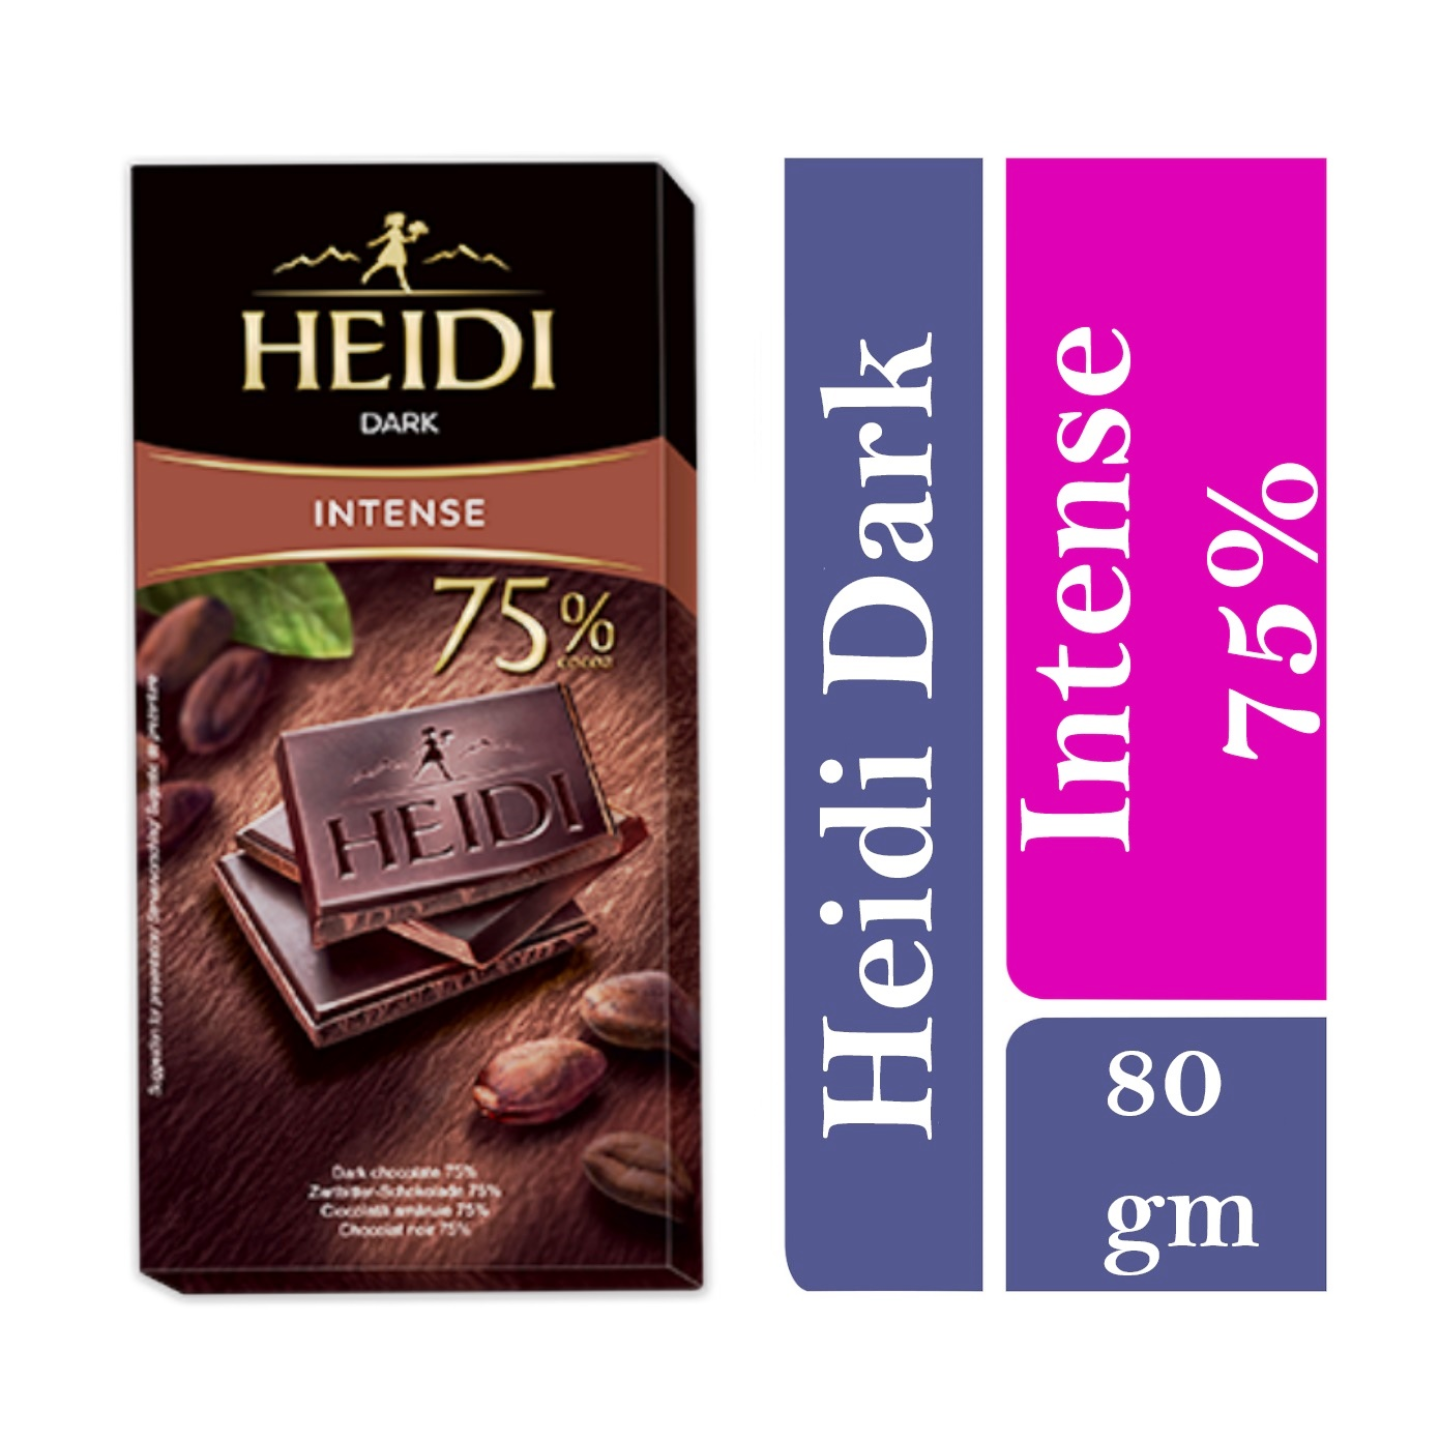 Heidi Dark Intense Chocolate Bar 75 Cocoa